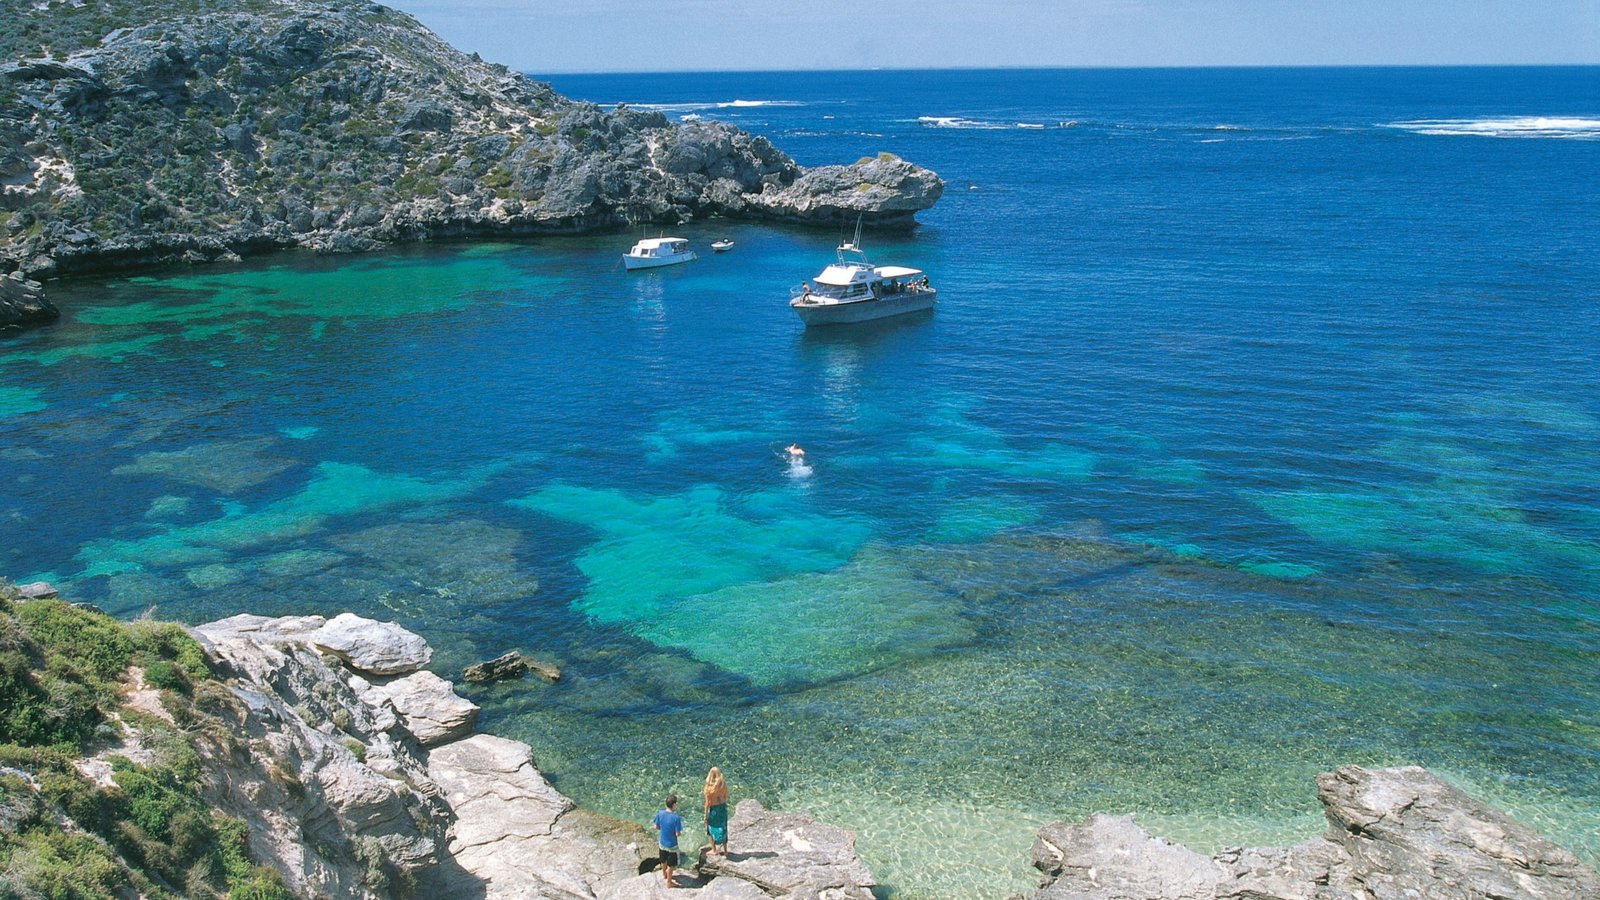 Rottnest Island which includes a bay or harbor, tropical scenes and rugged coastline